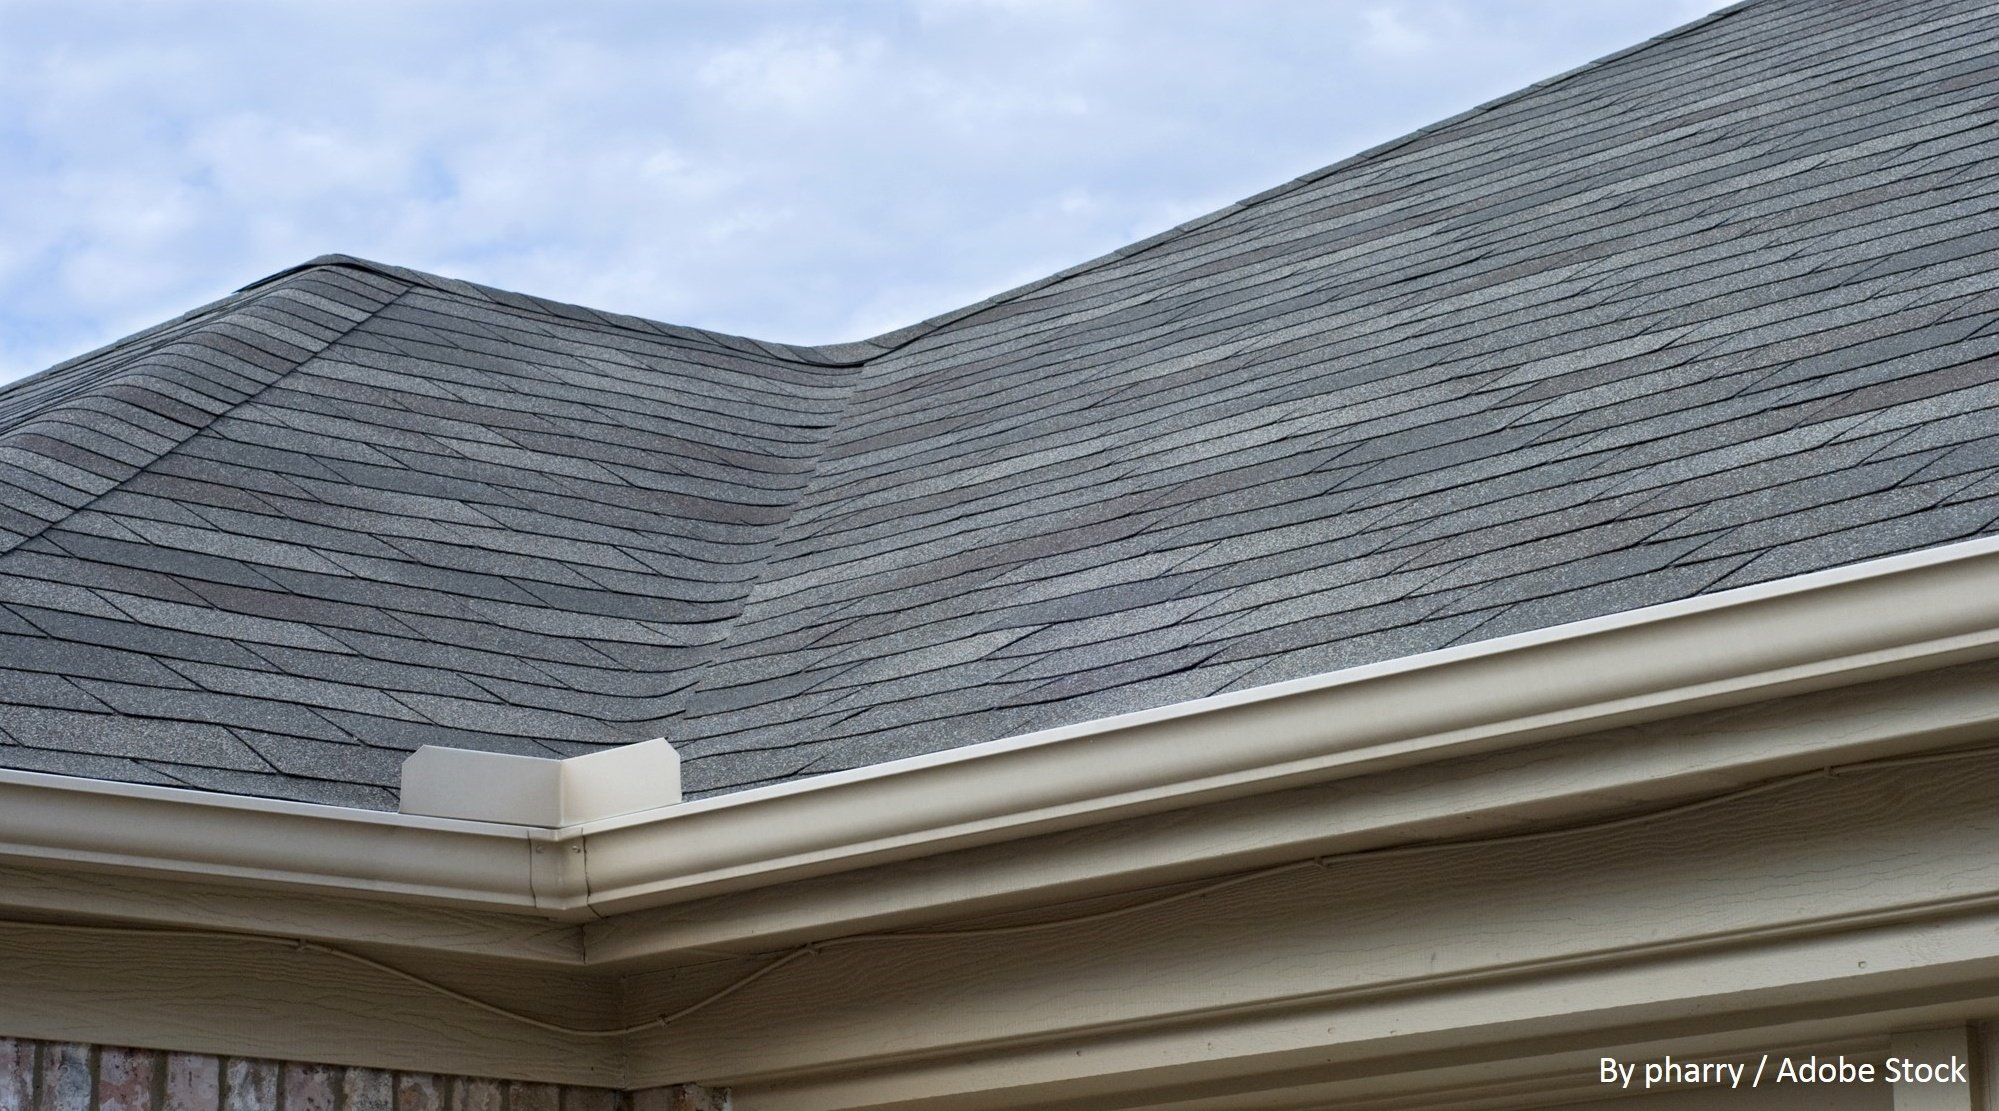 Dimensional Shingles Vs 3 Tab Shingles